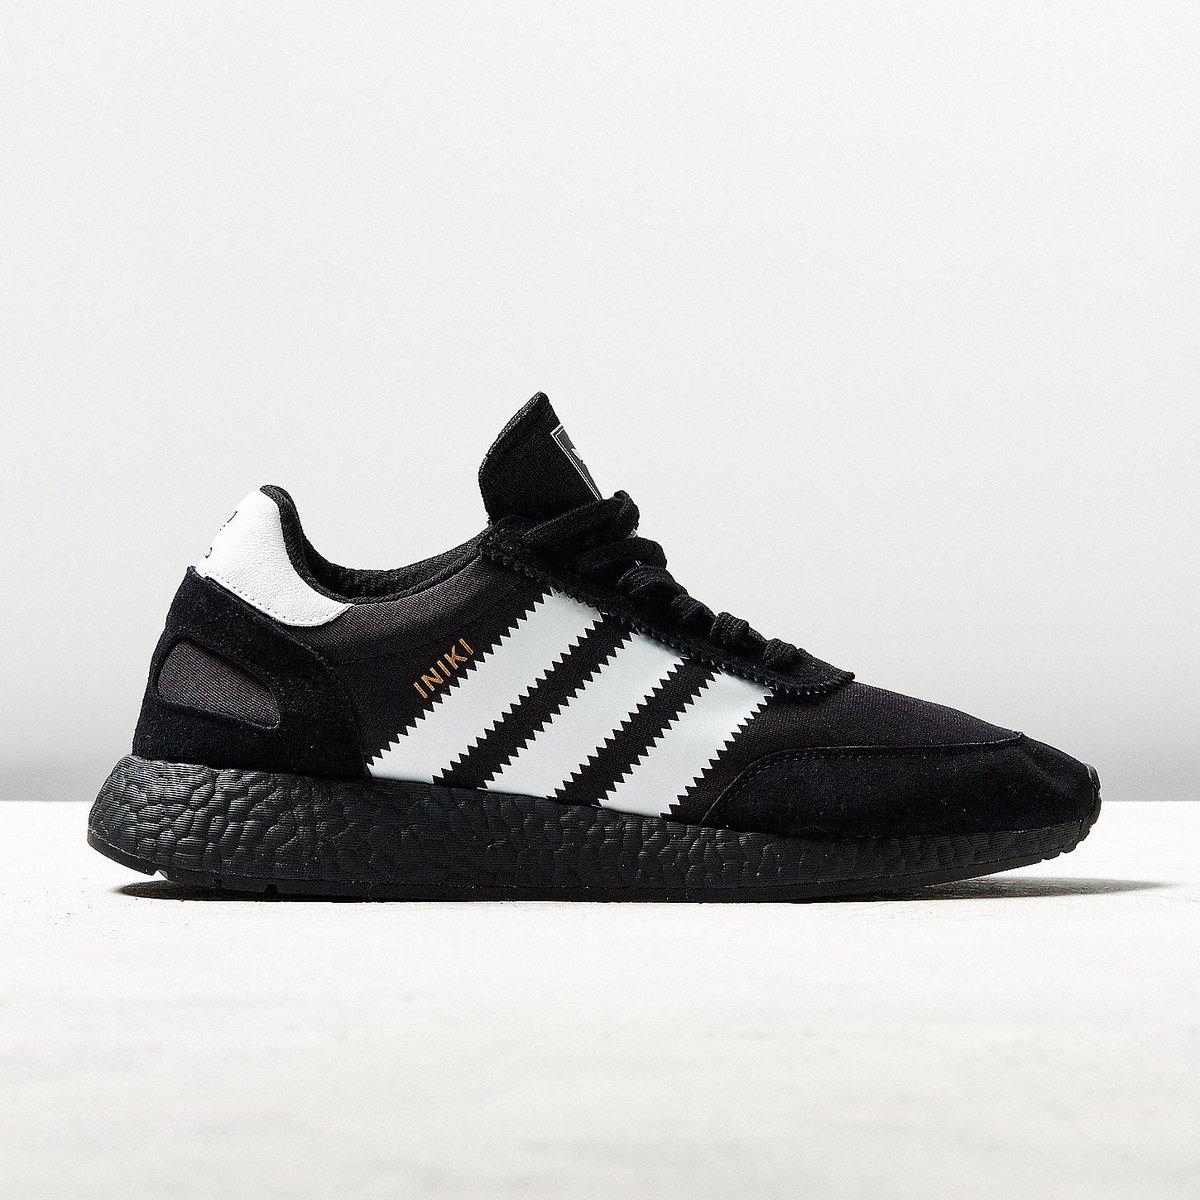 cheap for discount 763a6 191a4 Under retail on  UrbanOutfitters. adidas Iniki Runner i-5923. Retail  130.  Now  104 shipped. Discount applied in cart.